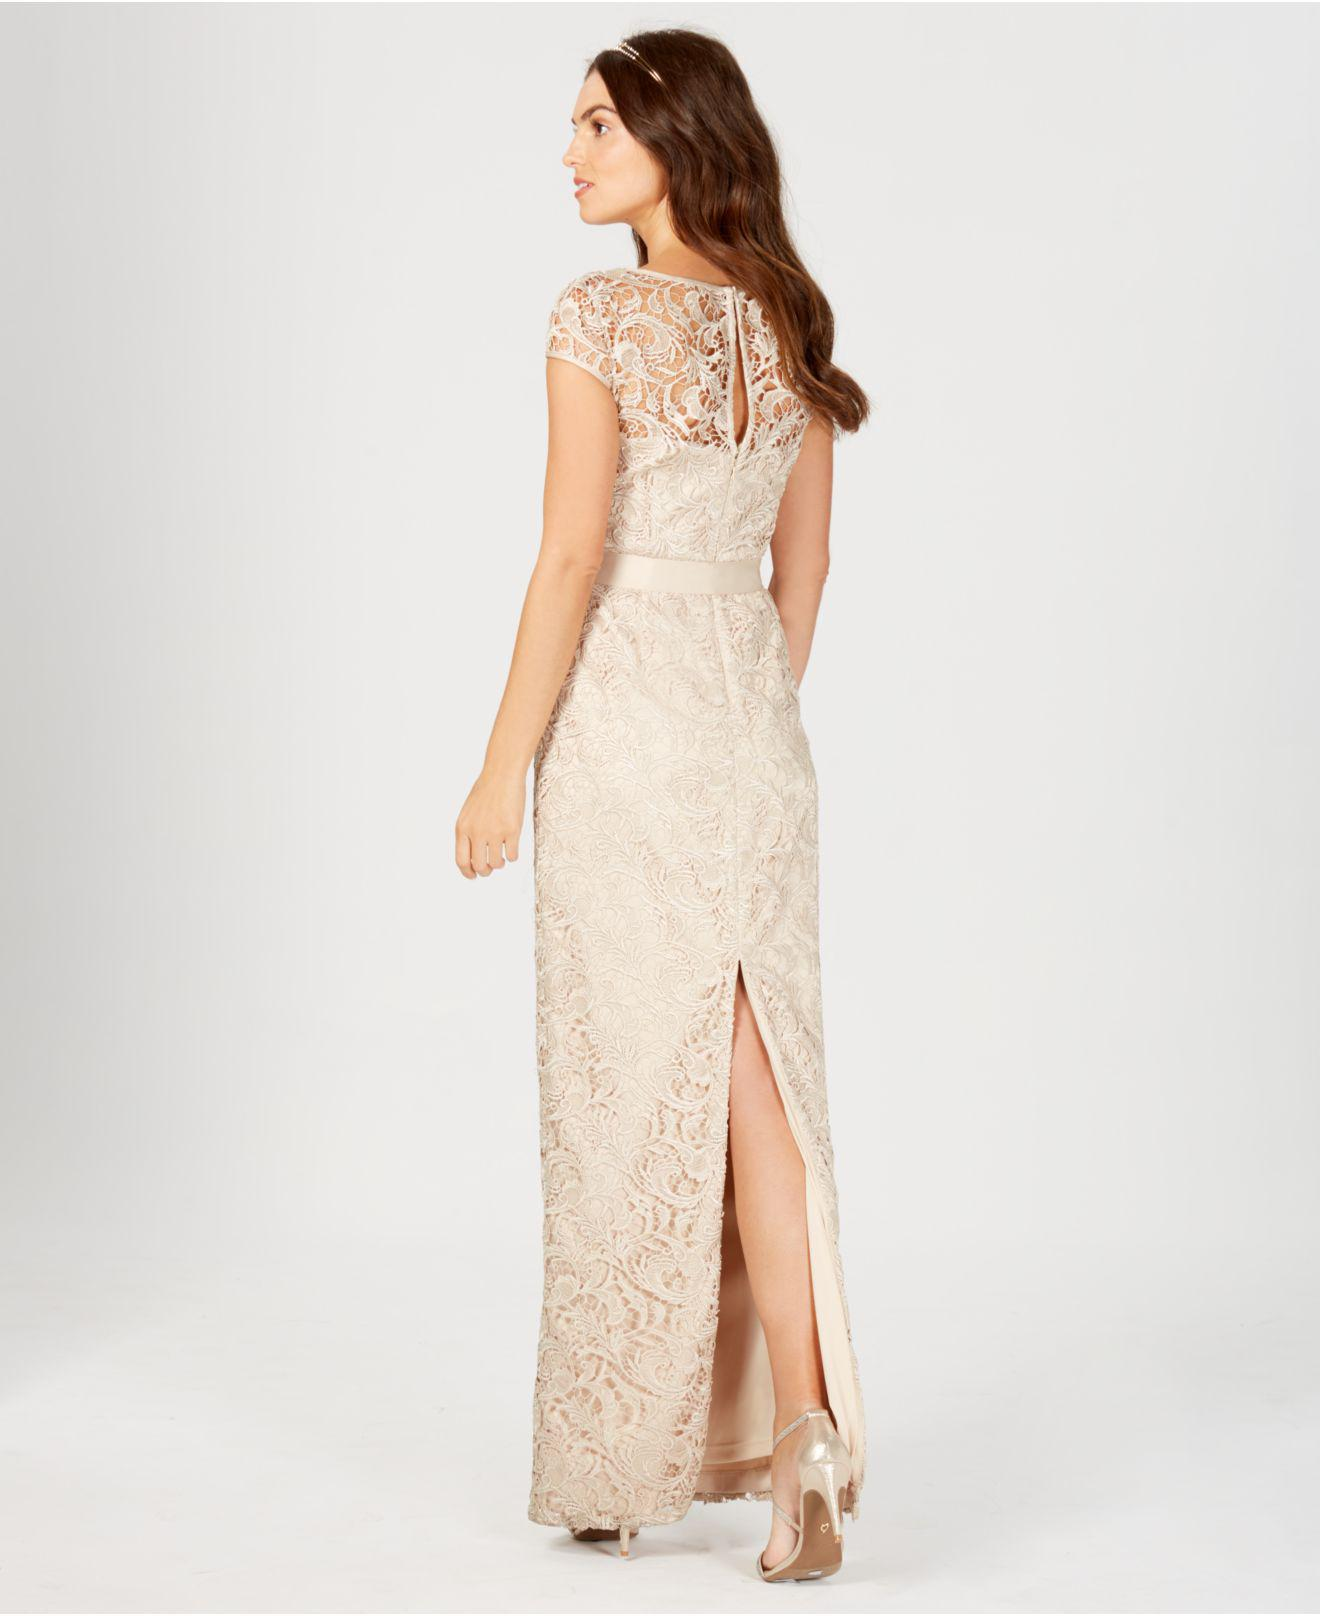 c5238bf24d7d Adrianna Papell Lace Cap-Sleeve Gown in White - Lyst